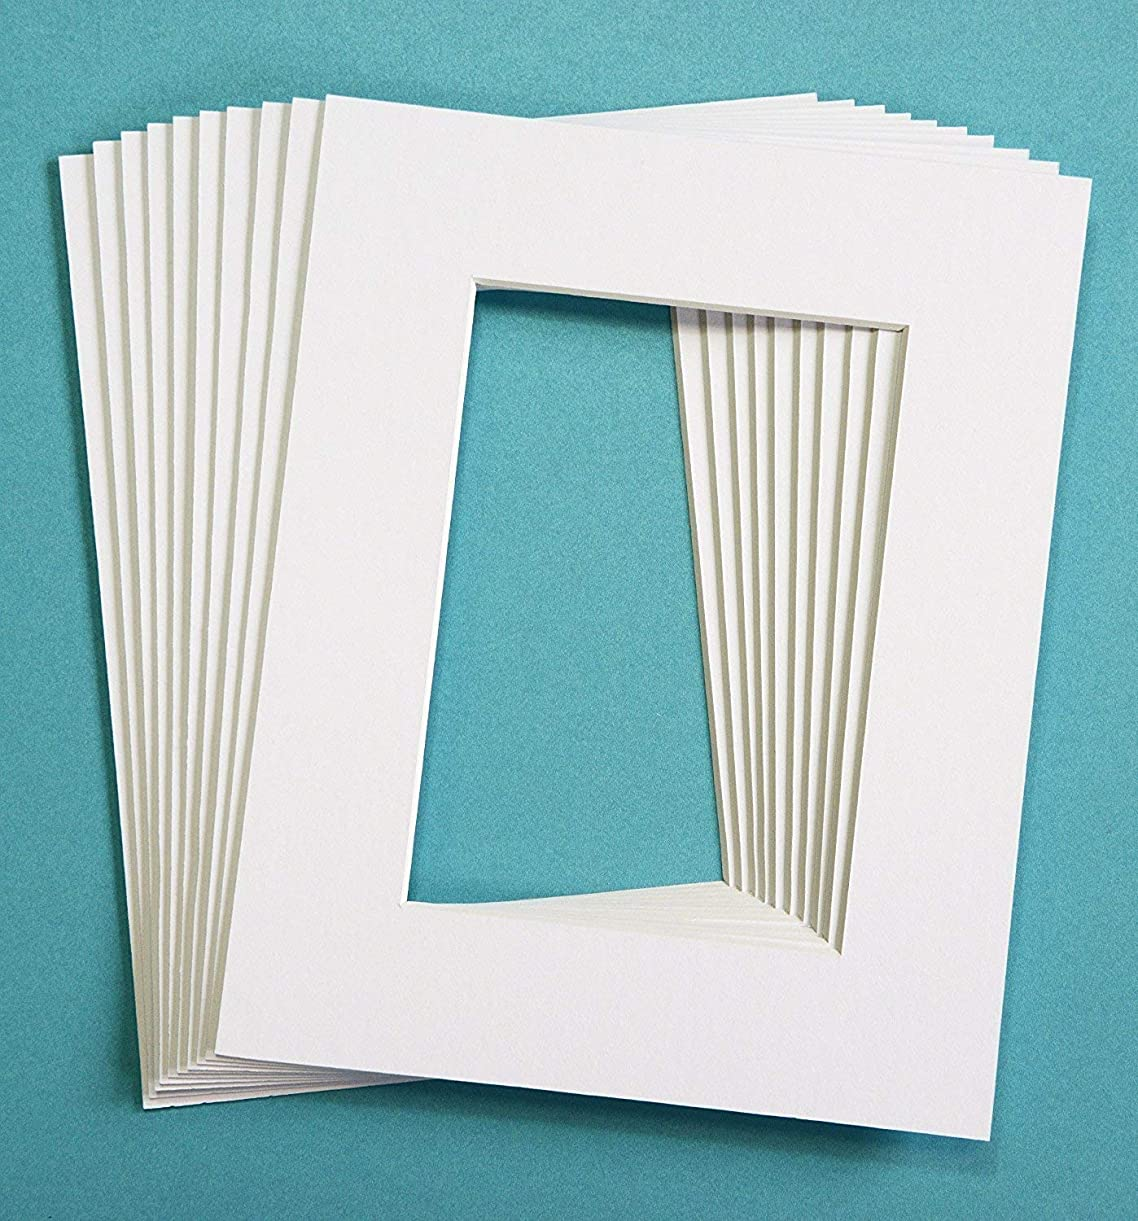 Pack of 25 WHITE 5x7 Picture Mats Matting with White Core Bevel Cut for 4x6 Pictures uqovh5736